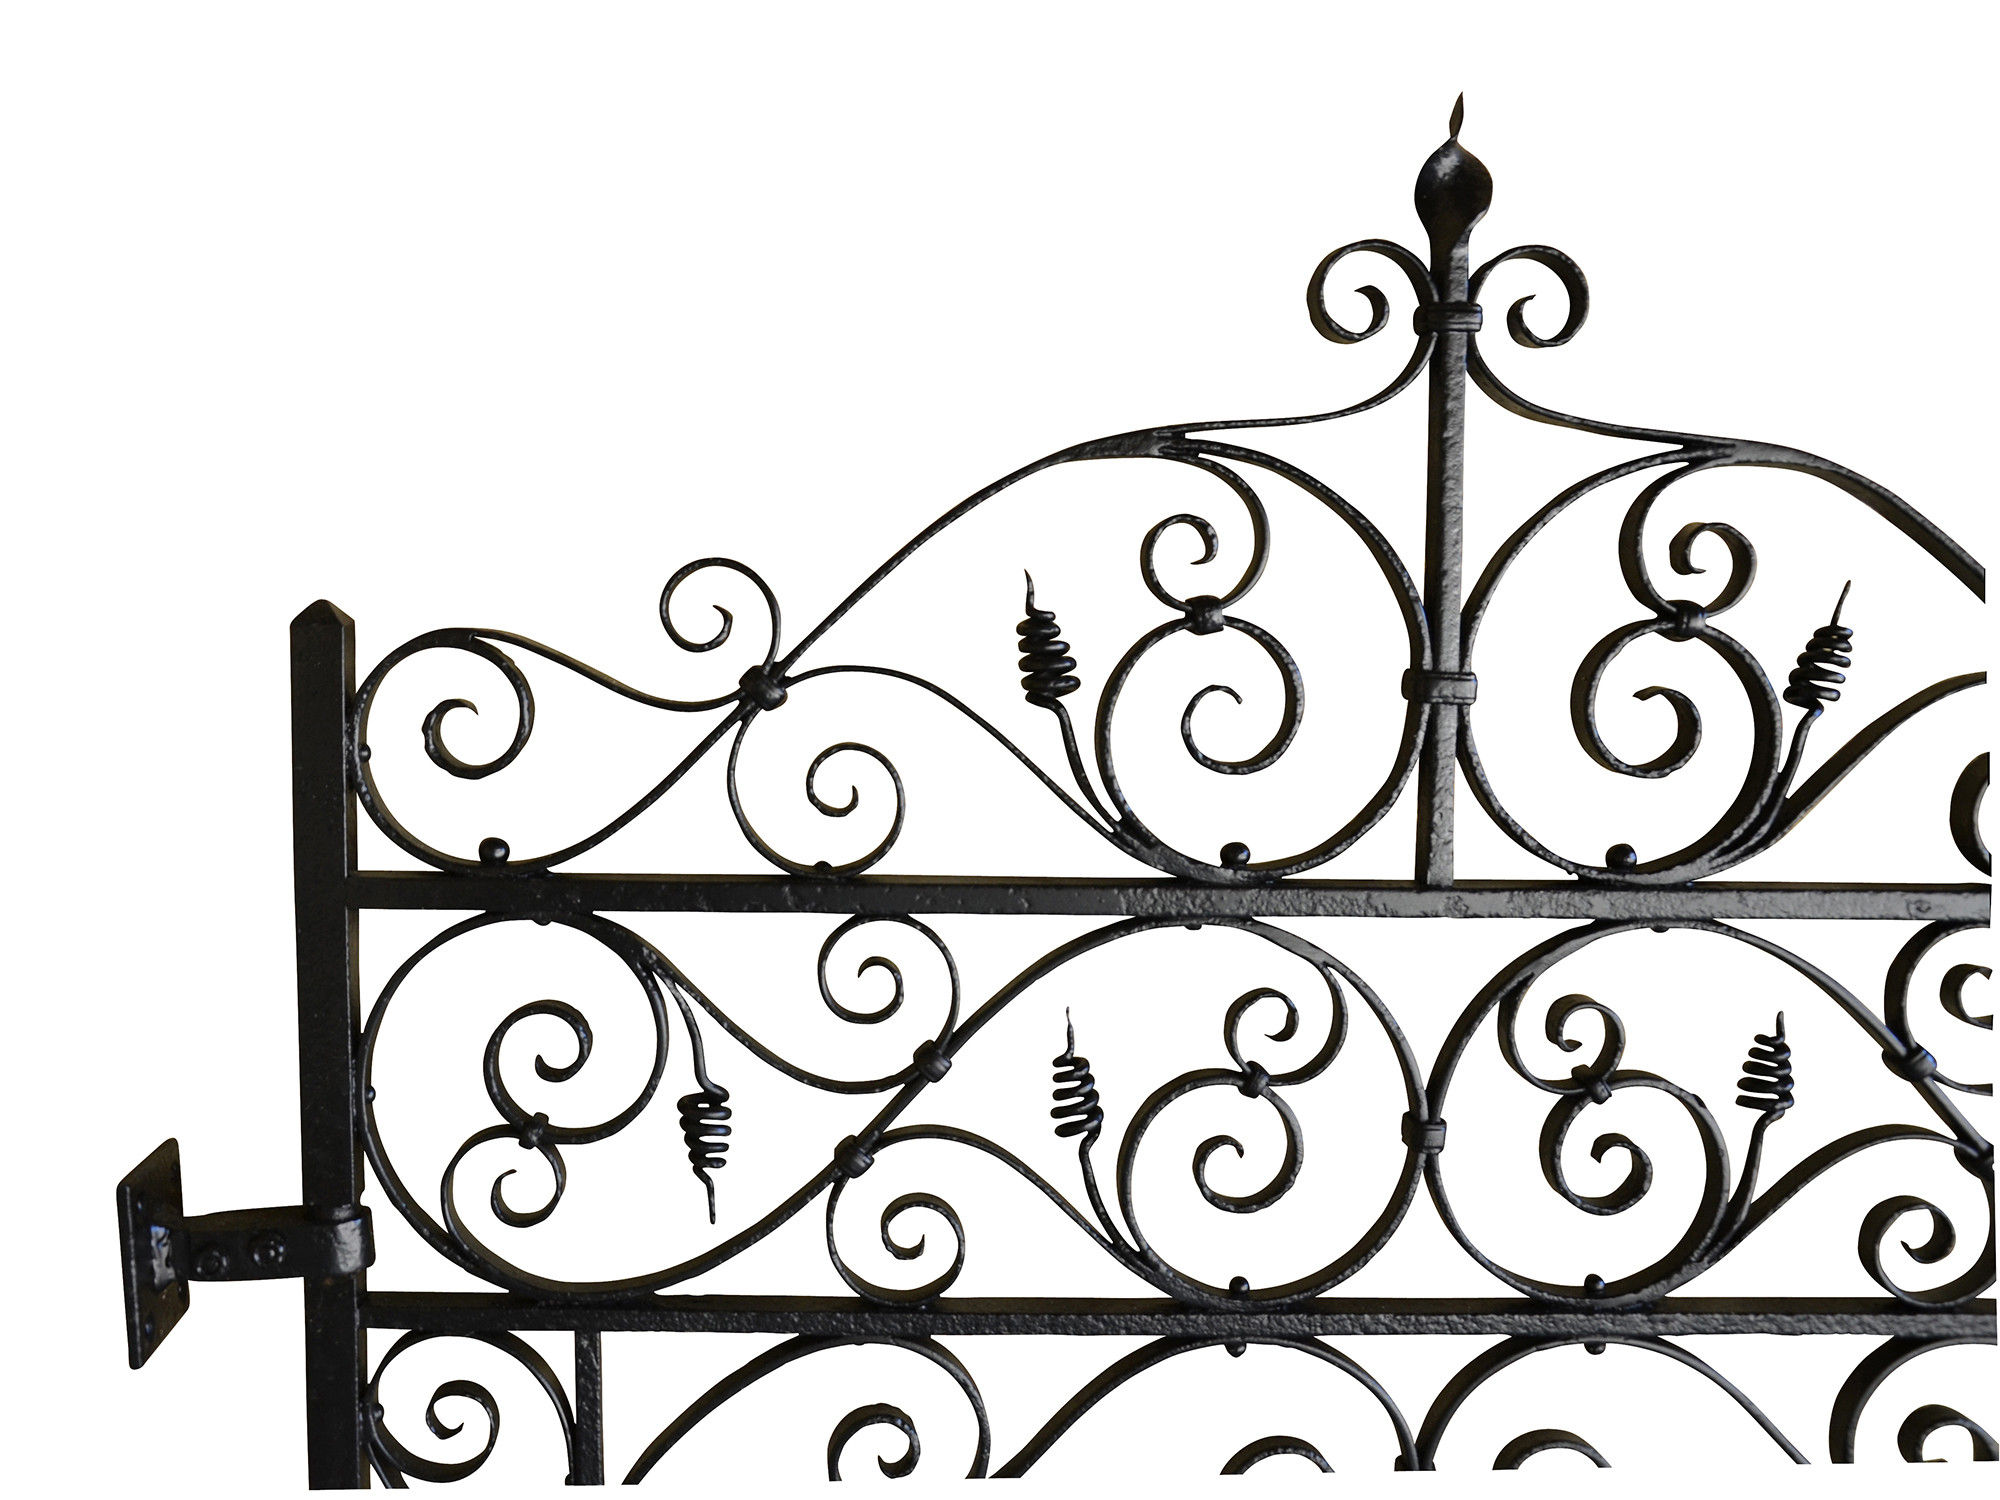 2000x1500 A Late 19th Century Wrought Iron Garden Gate